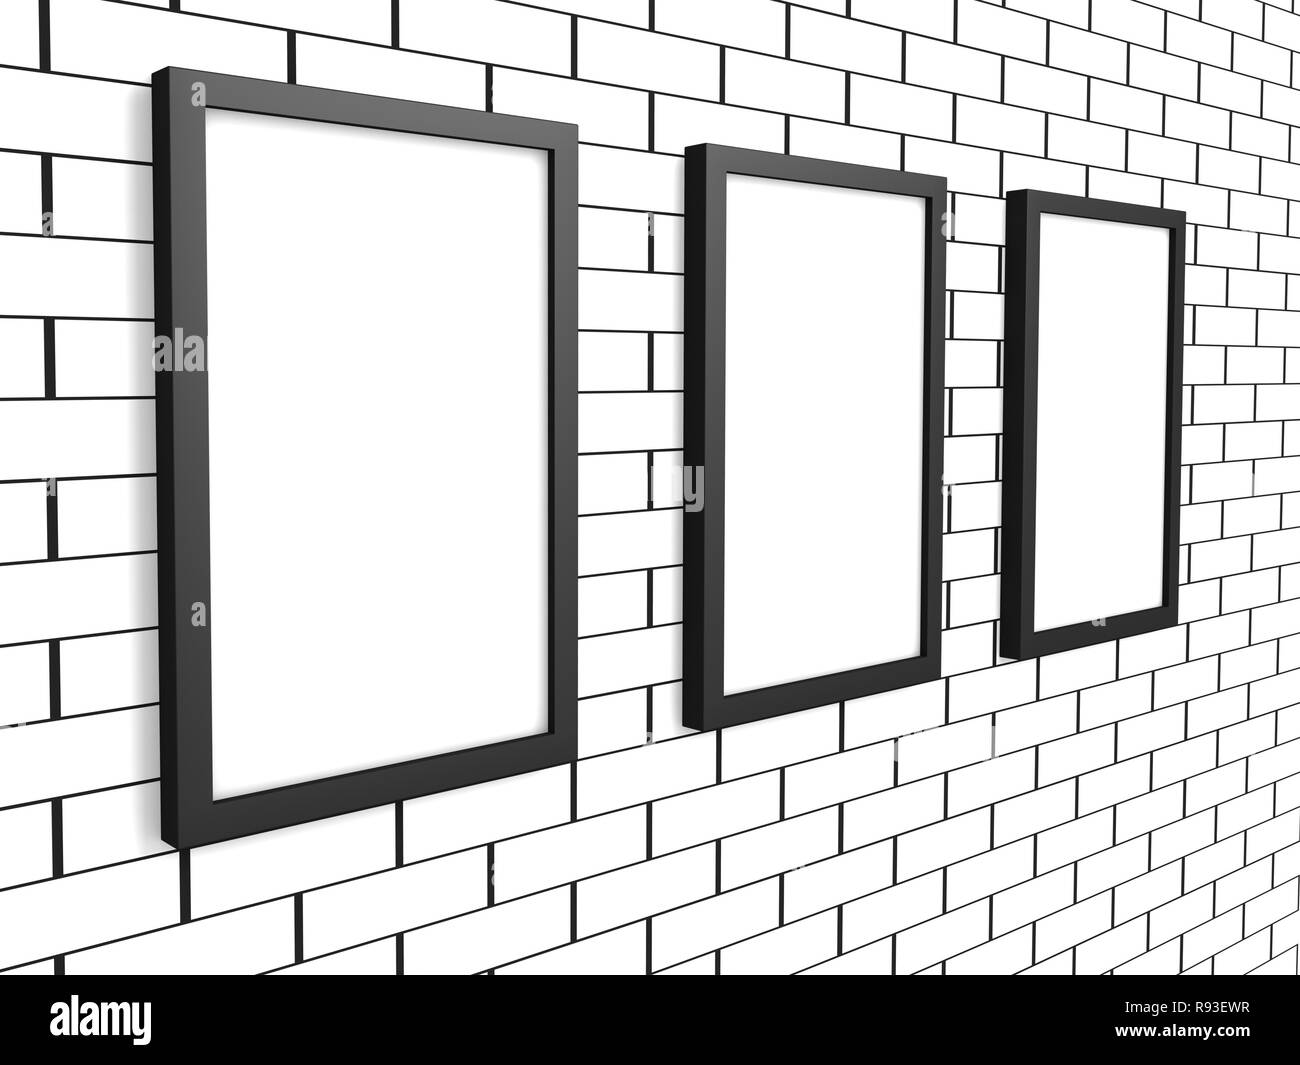 3d Wall Painting Black And White Stock Photos Images Alamy